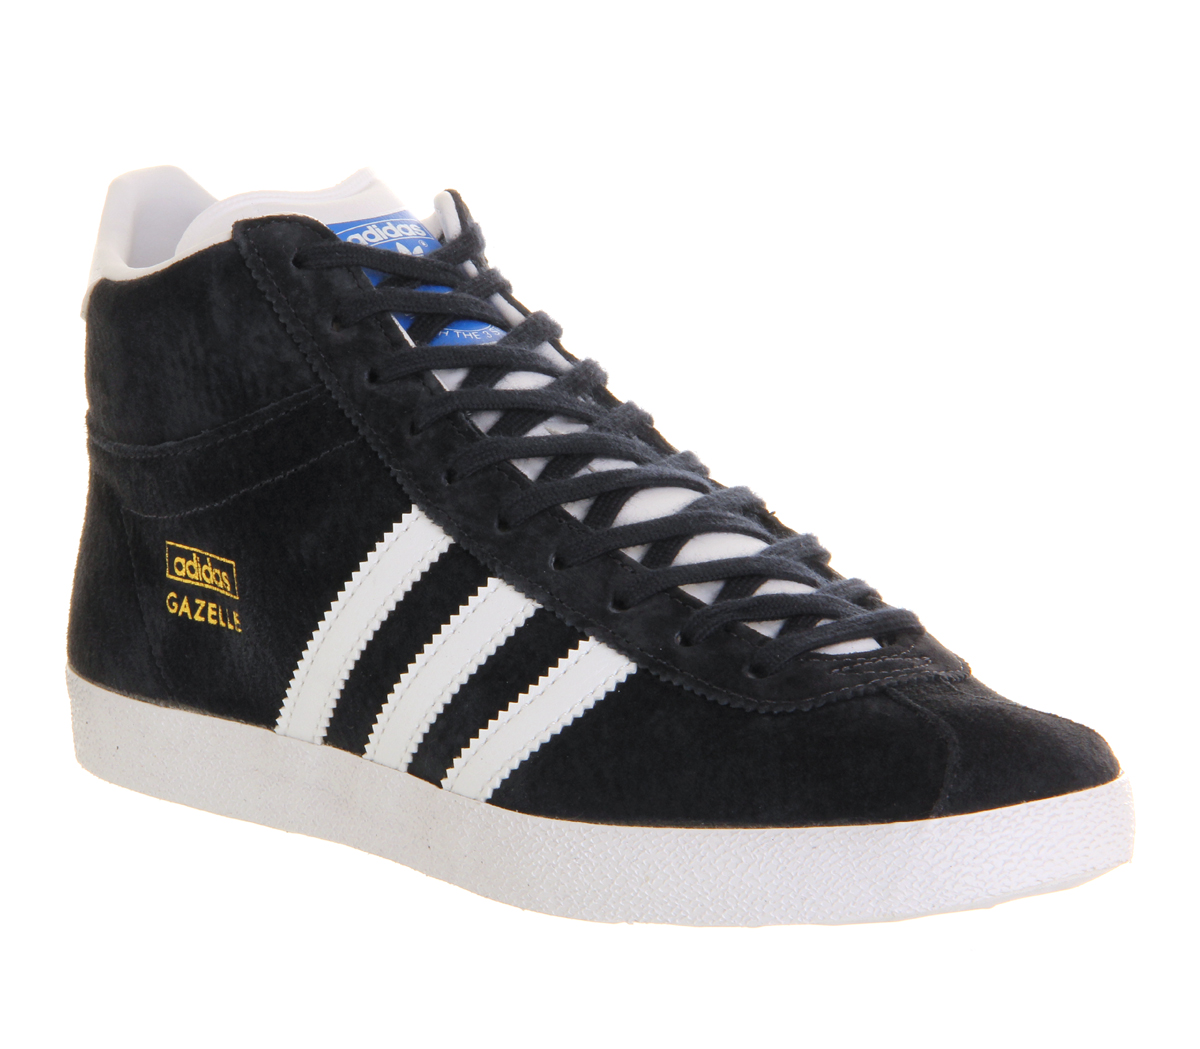 845b10ed4e54 ladies gazelle og Sale